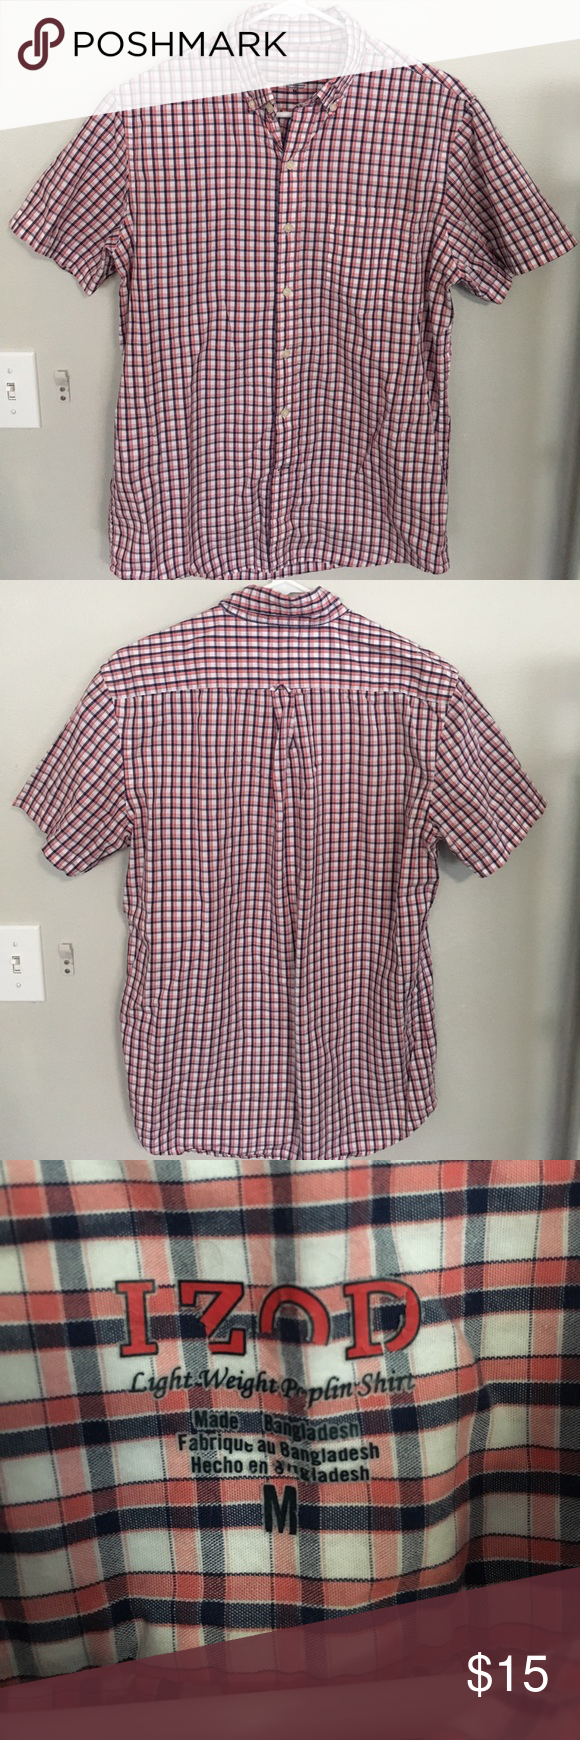 Red White Short Sleeve IZOD Button Down Red White Short Sleeve IZOD Button Down. M but can fit a L. Worn a couple of times but no flaws except for the print on the neck but is BARELY NOTICEABLE. WILL WASH BEFORE SHIPPING! WILL NEGOTIATE! Izod Shirts Casual Button Down Shirts